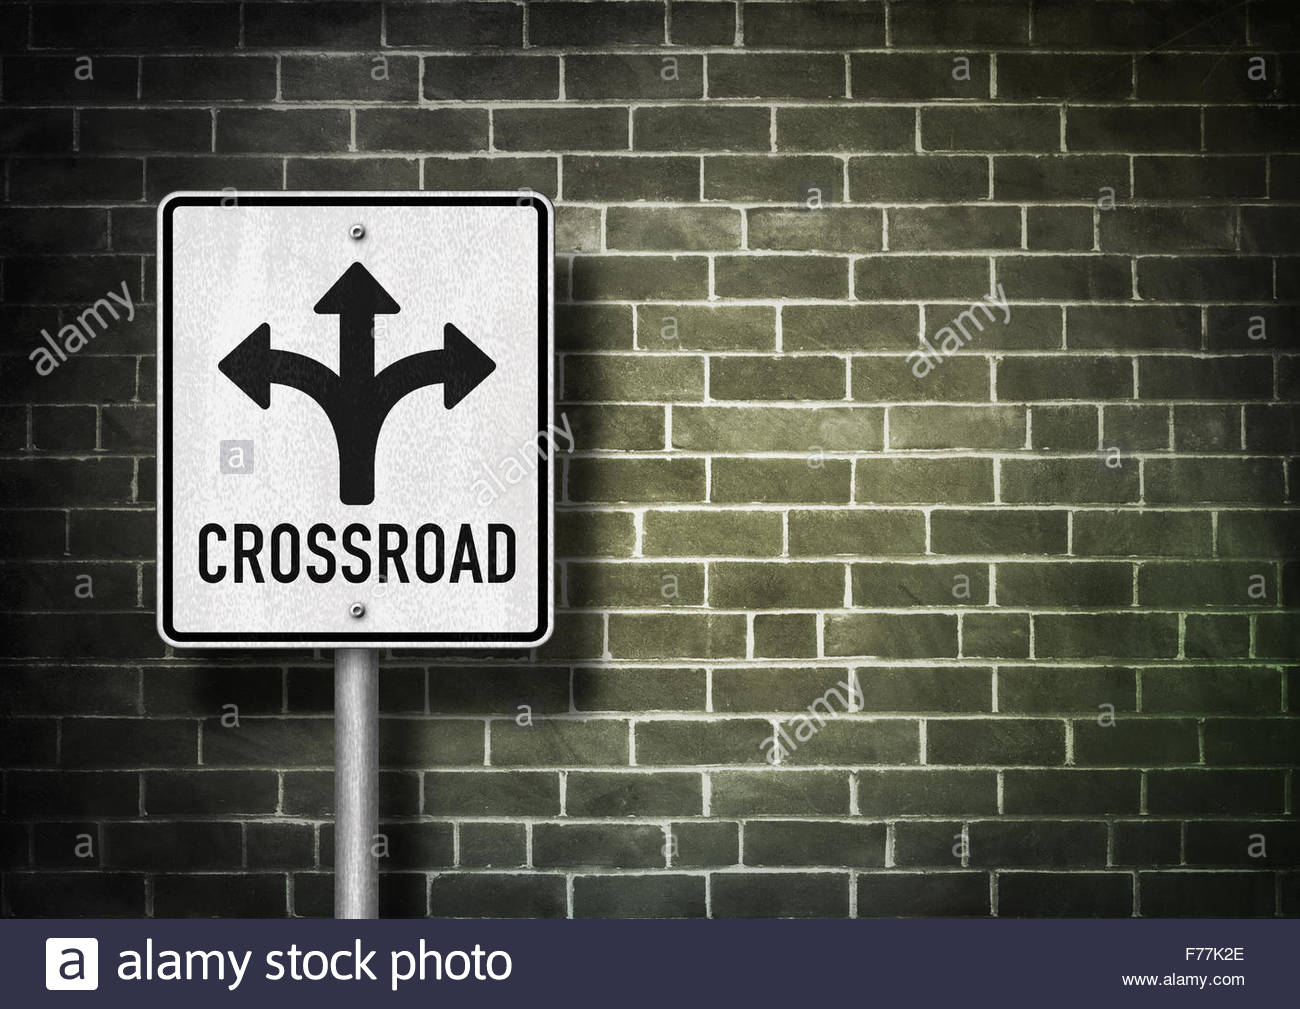 Crossroad - Road sign - Stock Image